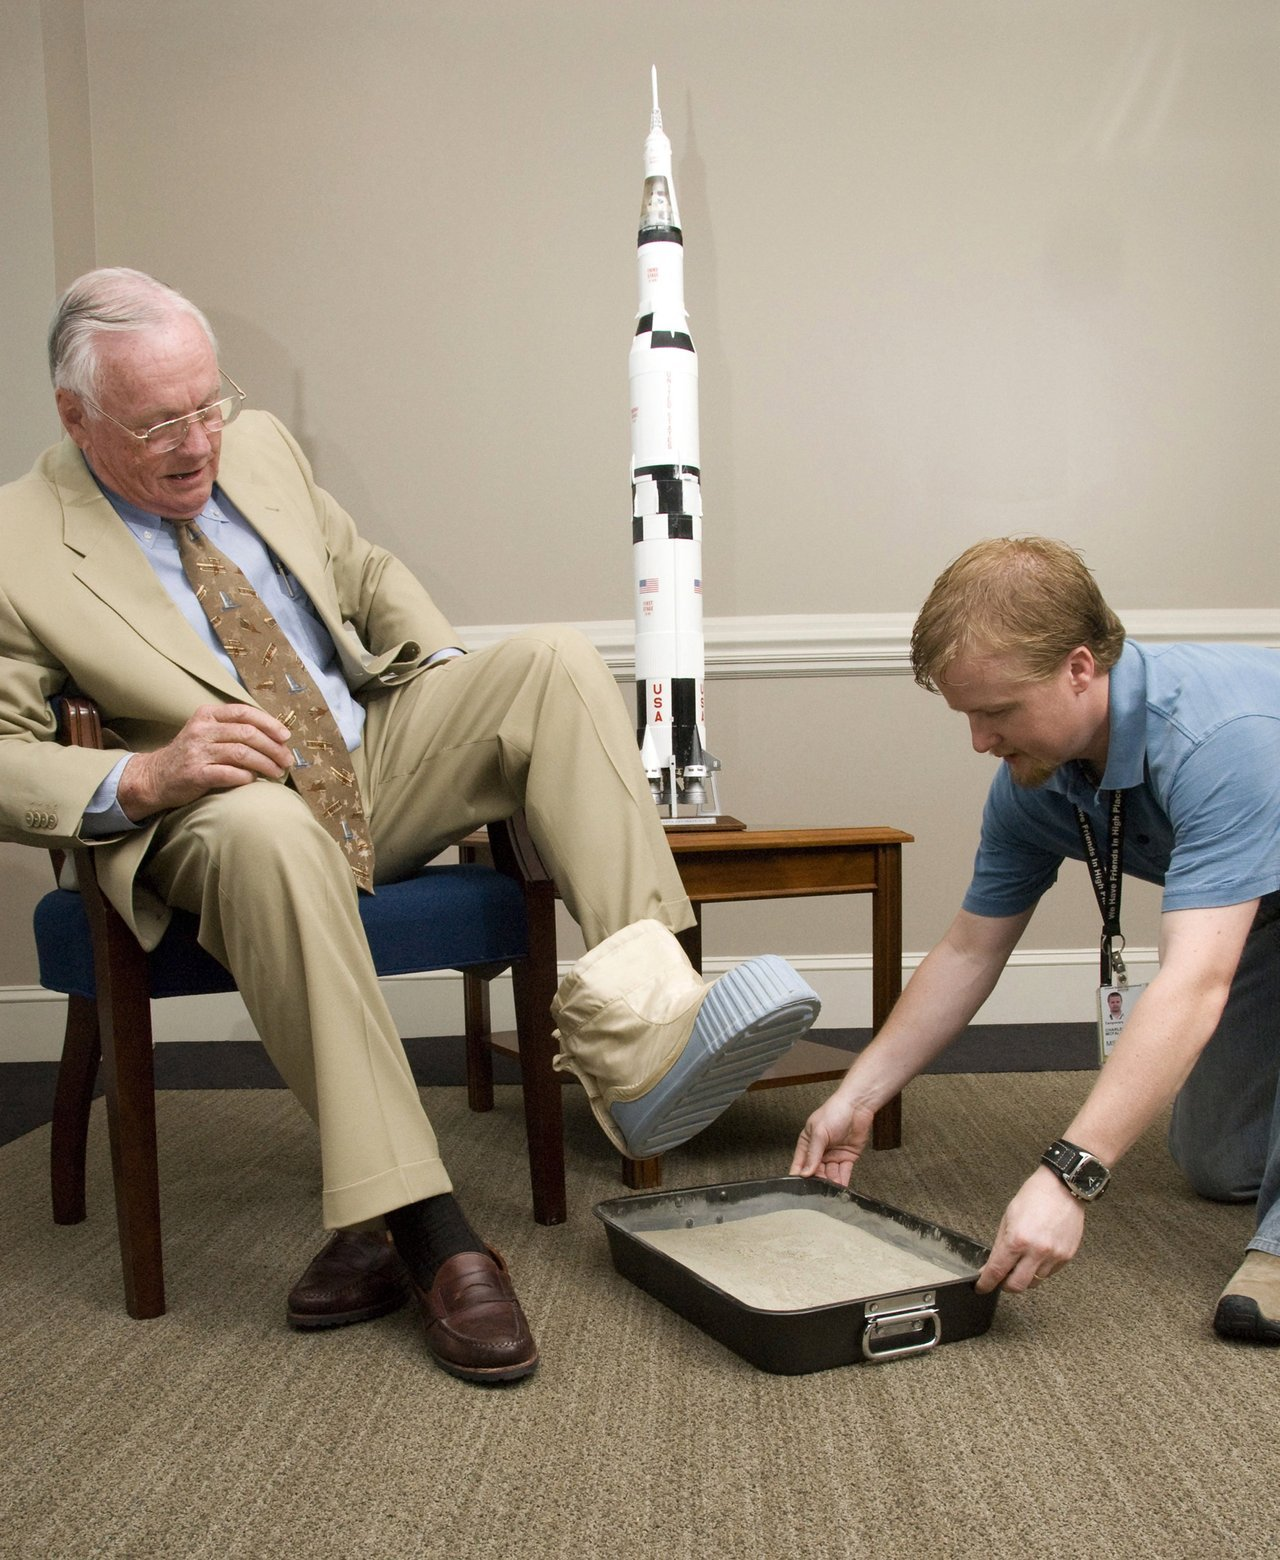 jump-suit:  spacewatching:  Among several other NASA dignitaries, former astronaut Neil A. Armstrong visited the Marshall Space Flight Center (MSFC) in attendance of the annual NASA Advisory Council Meeting. While here, Mr. Armstrong was gracious enough to allow the casting of his footprint. This casting will join those of other astronauts on display at the center. [Happy 82nd Birthday Neil - ed]  This photo is excellent.  I MISS HIM SO